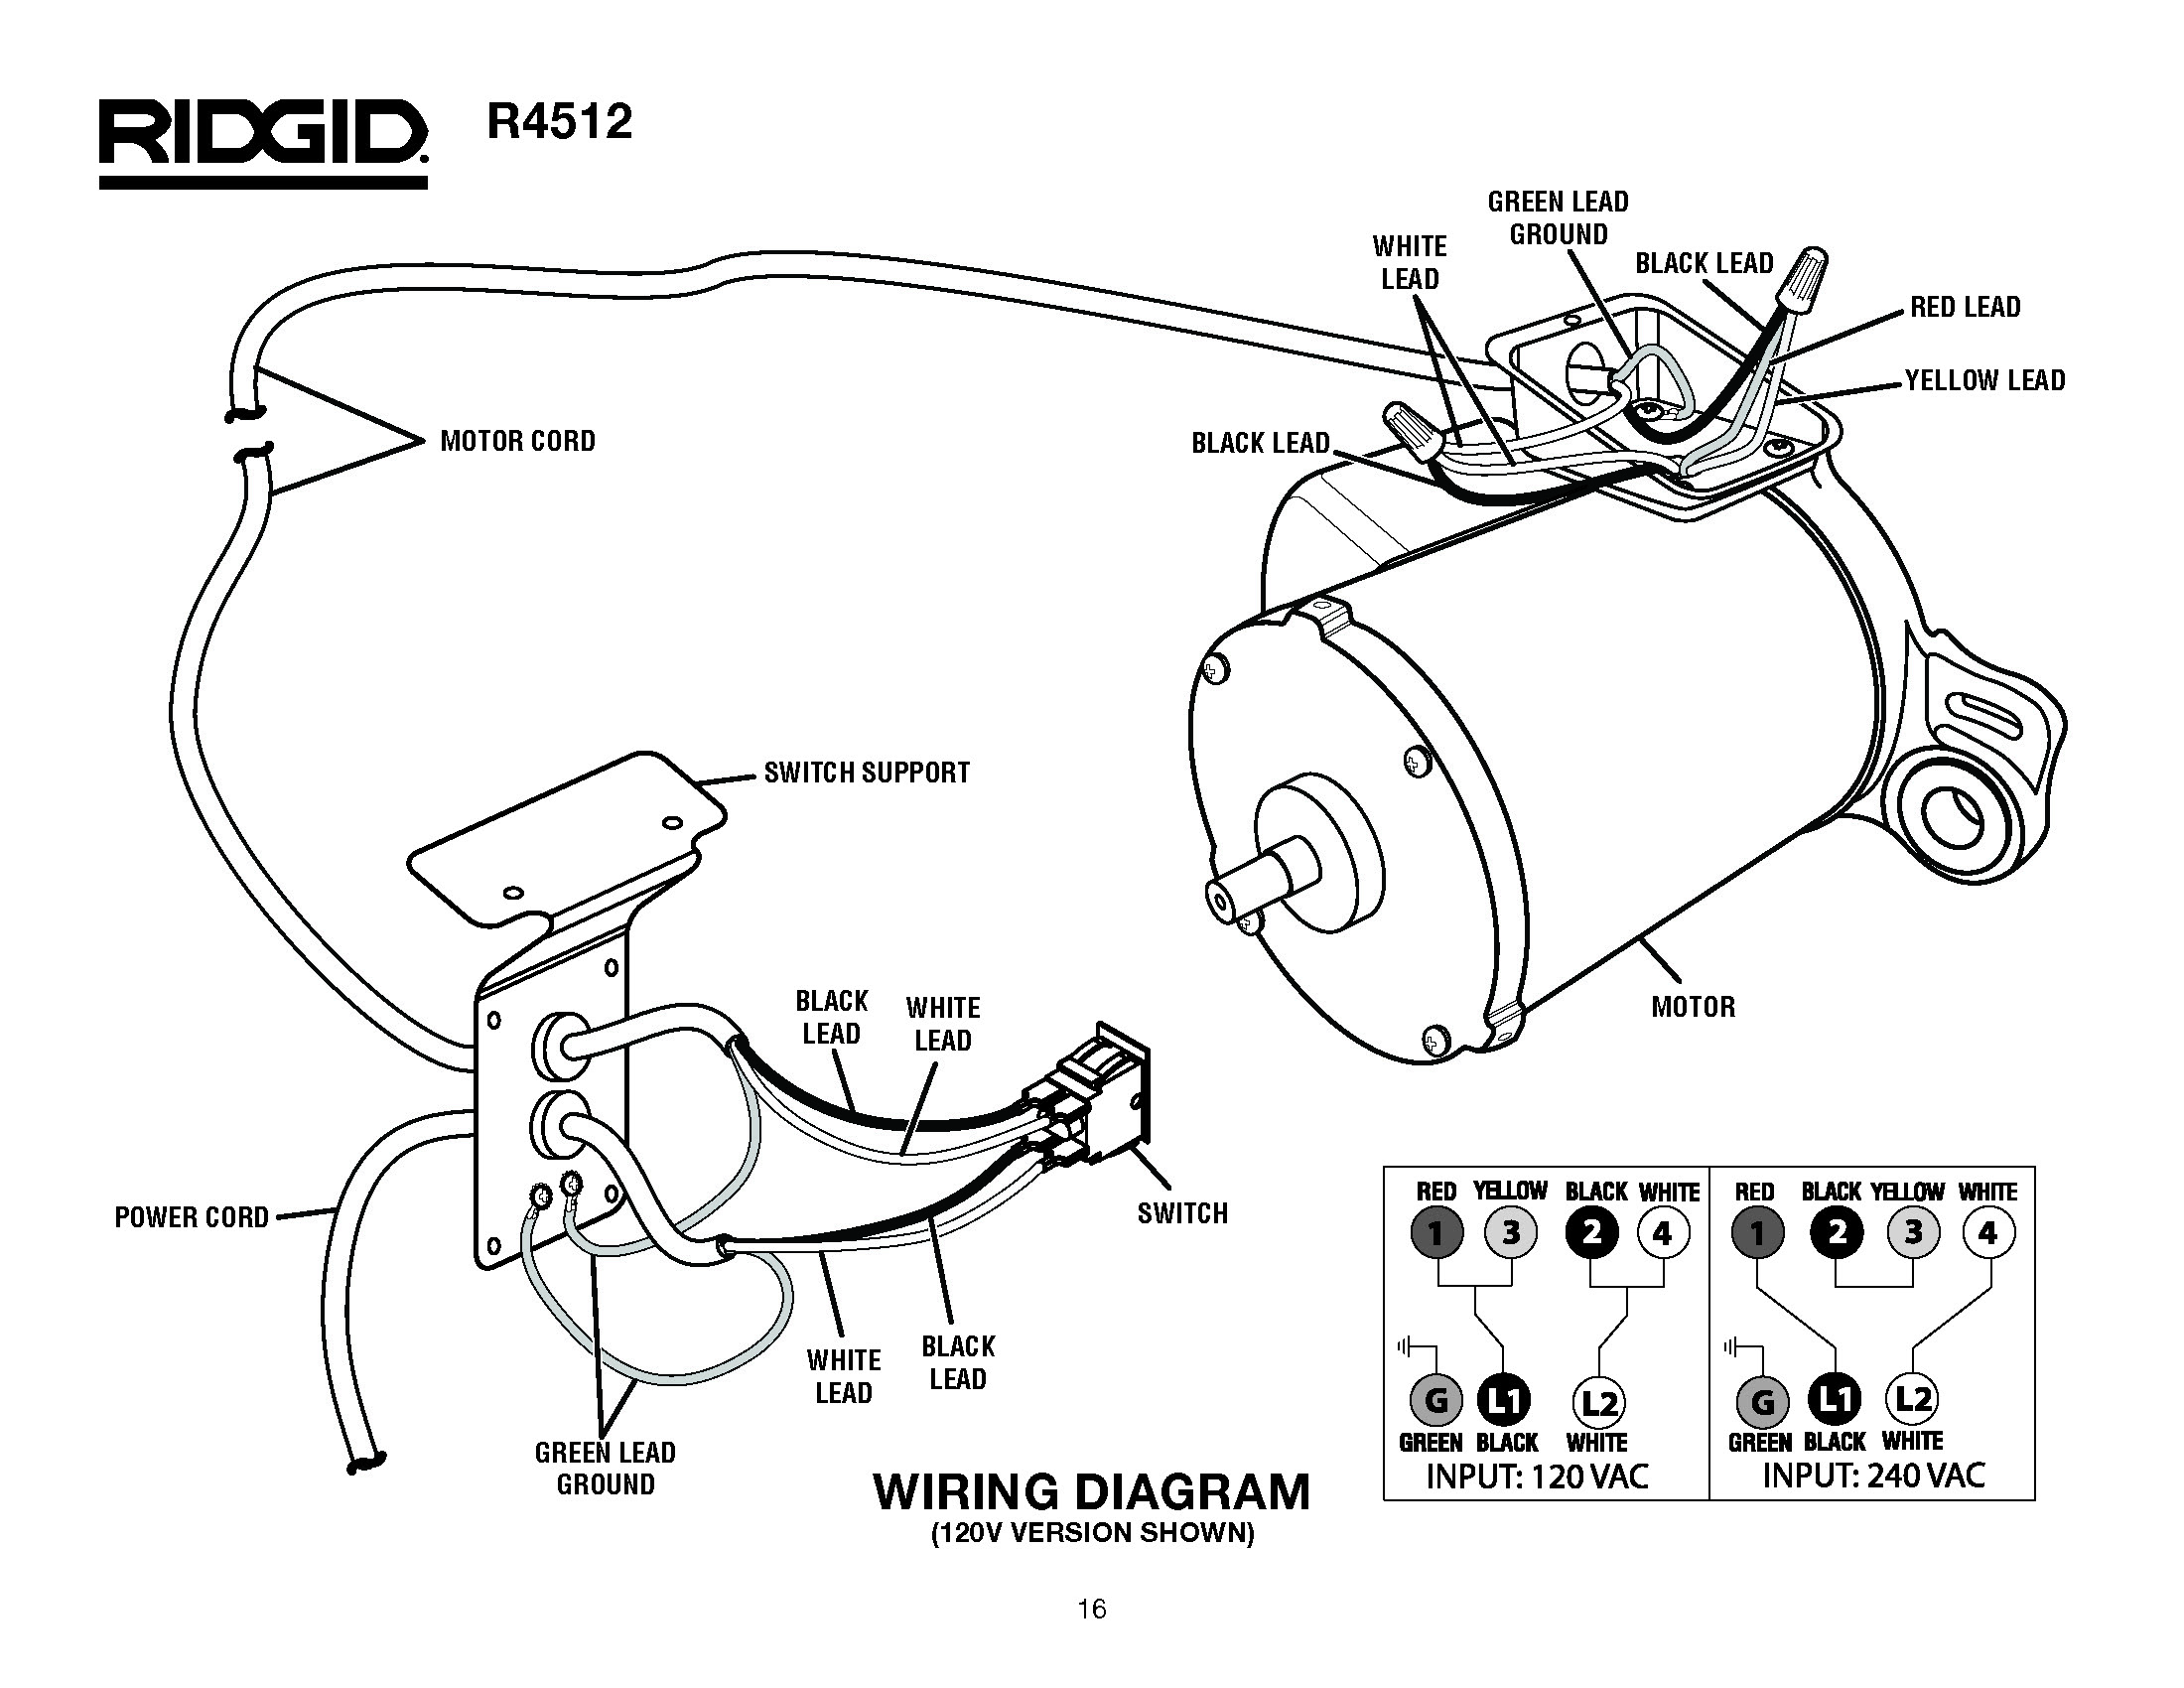 Wiring Diagram For Ryobi Table Saw Bts10